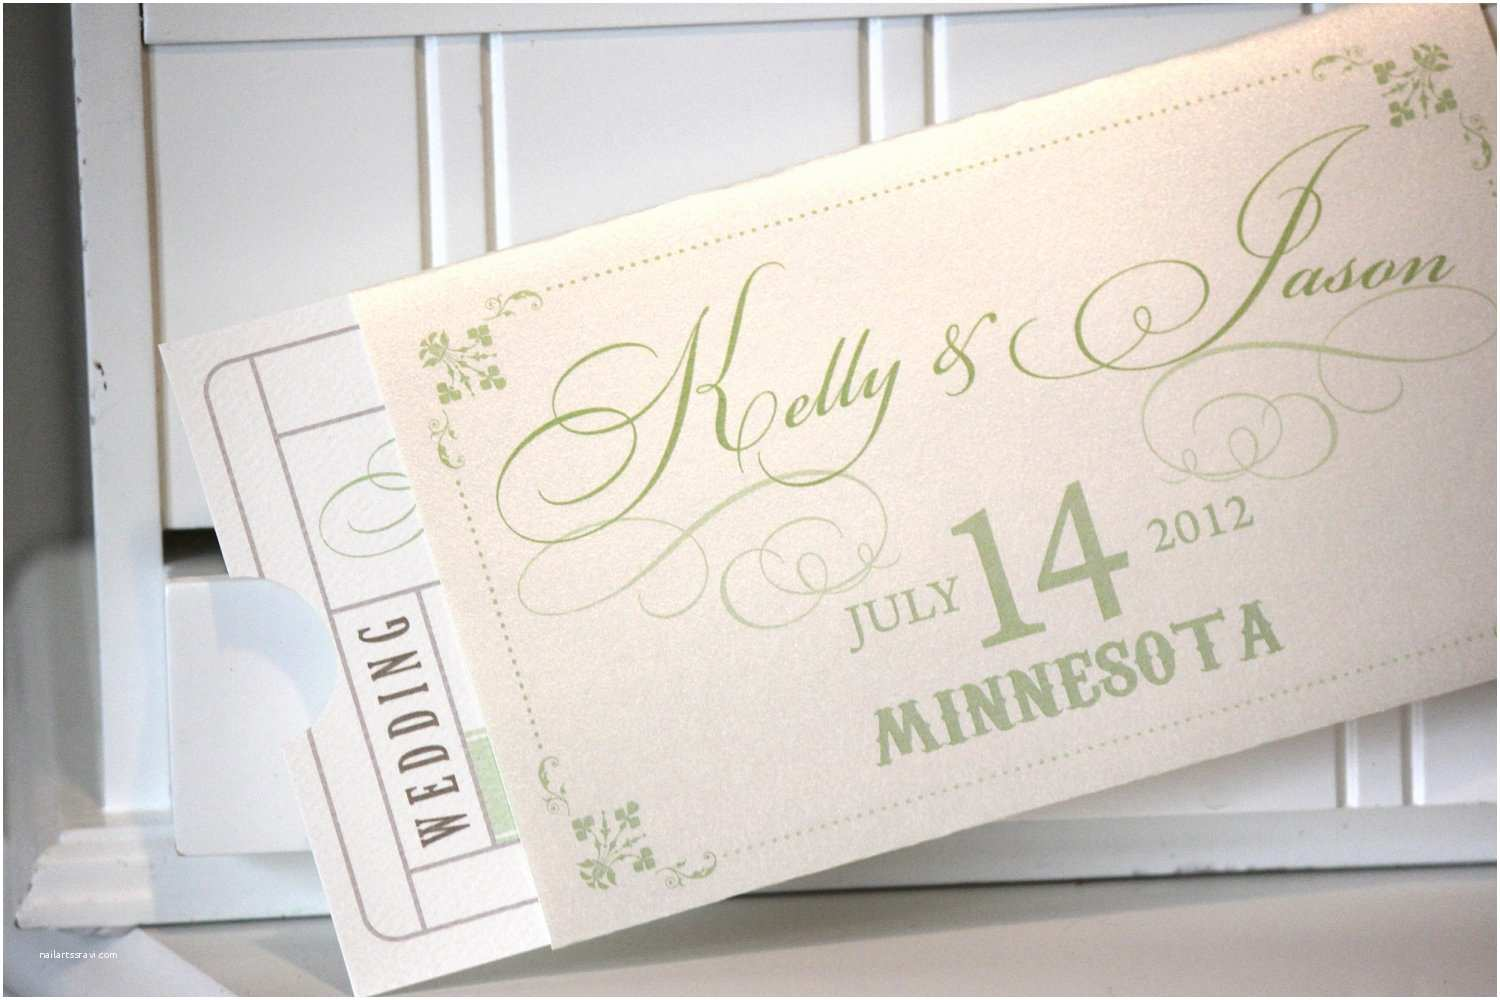 Vintage Ticket Style Wedding Invitations Wedding Invitations Ticket Invitations Vintage by